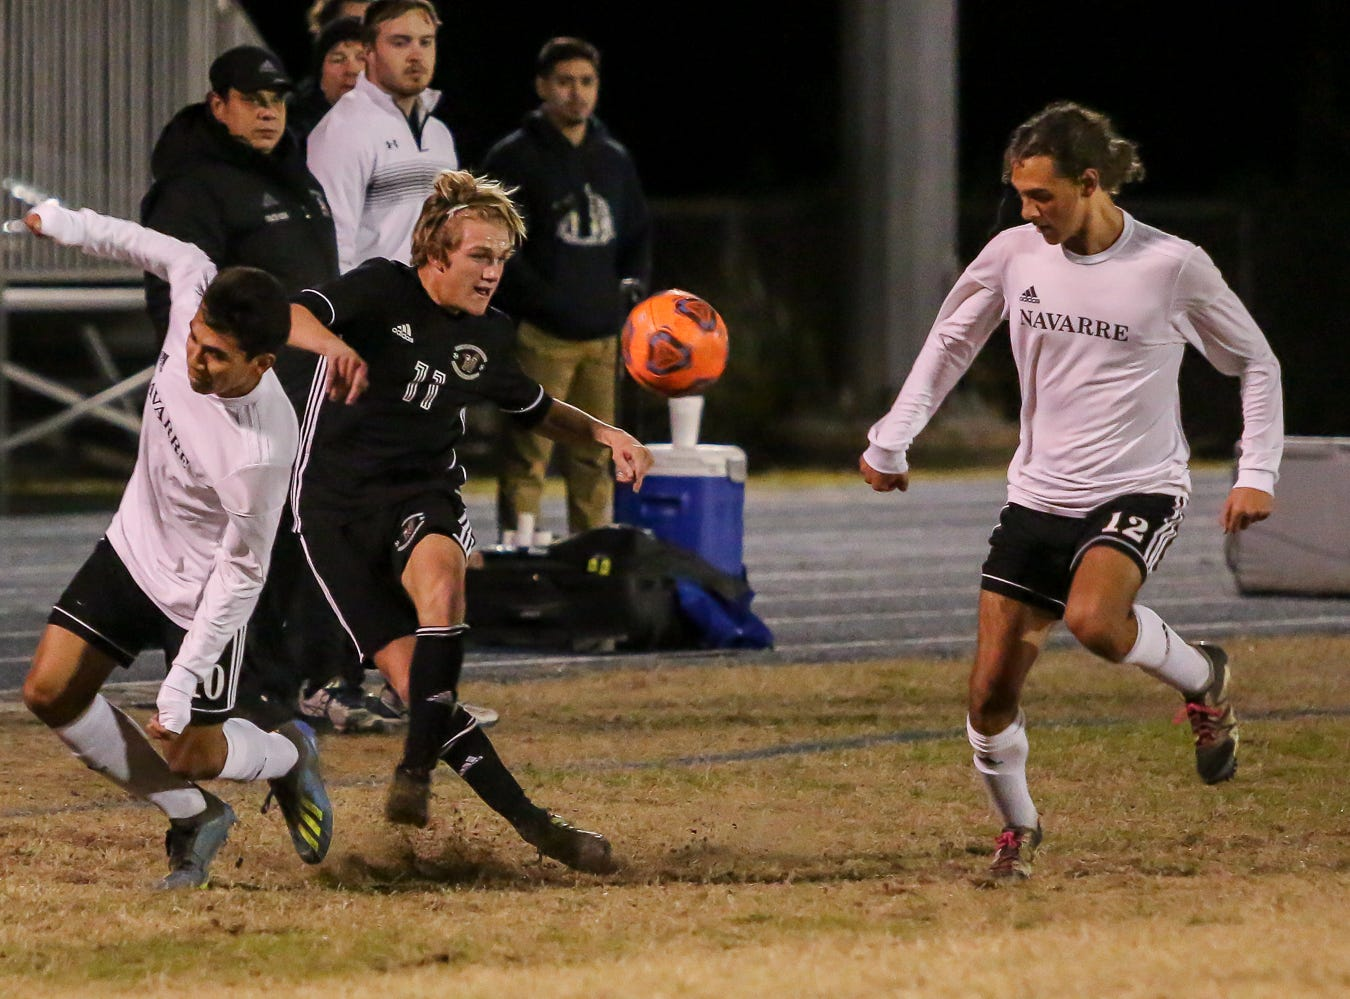 Navarre's Caleb Long (12) watches as teammate Joel Recinos (10) and Niceville's Brad Simmons (11) get tangled up while fighting for control of the ball in the District 1-4A championship game at Washington High School on Friday, February 1, 2019. For the second straight year, Niceville shut-out Navarre to win the championship. Last year, the score was 6-0 and this year it was 7-0.